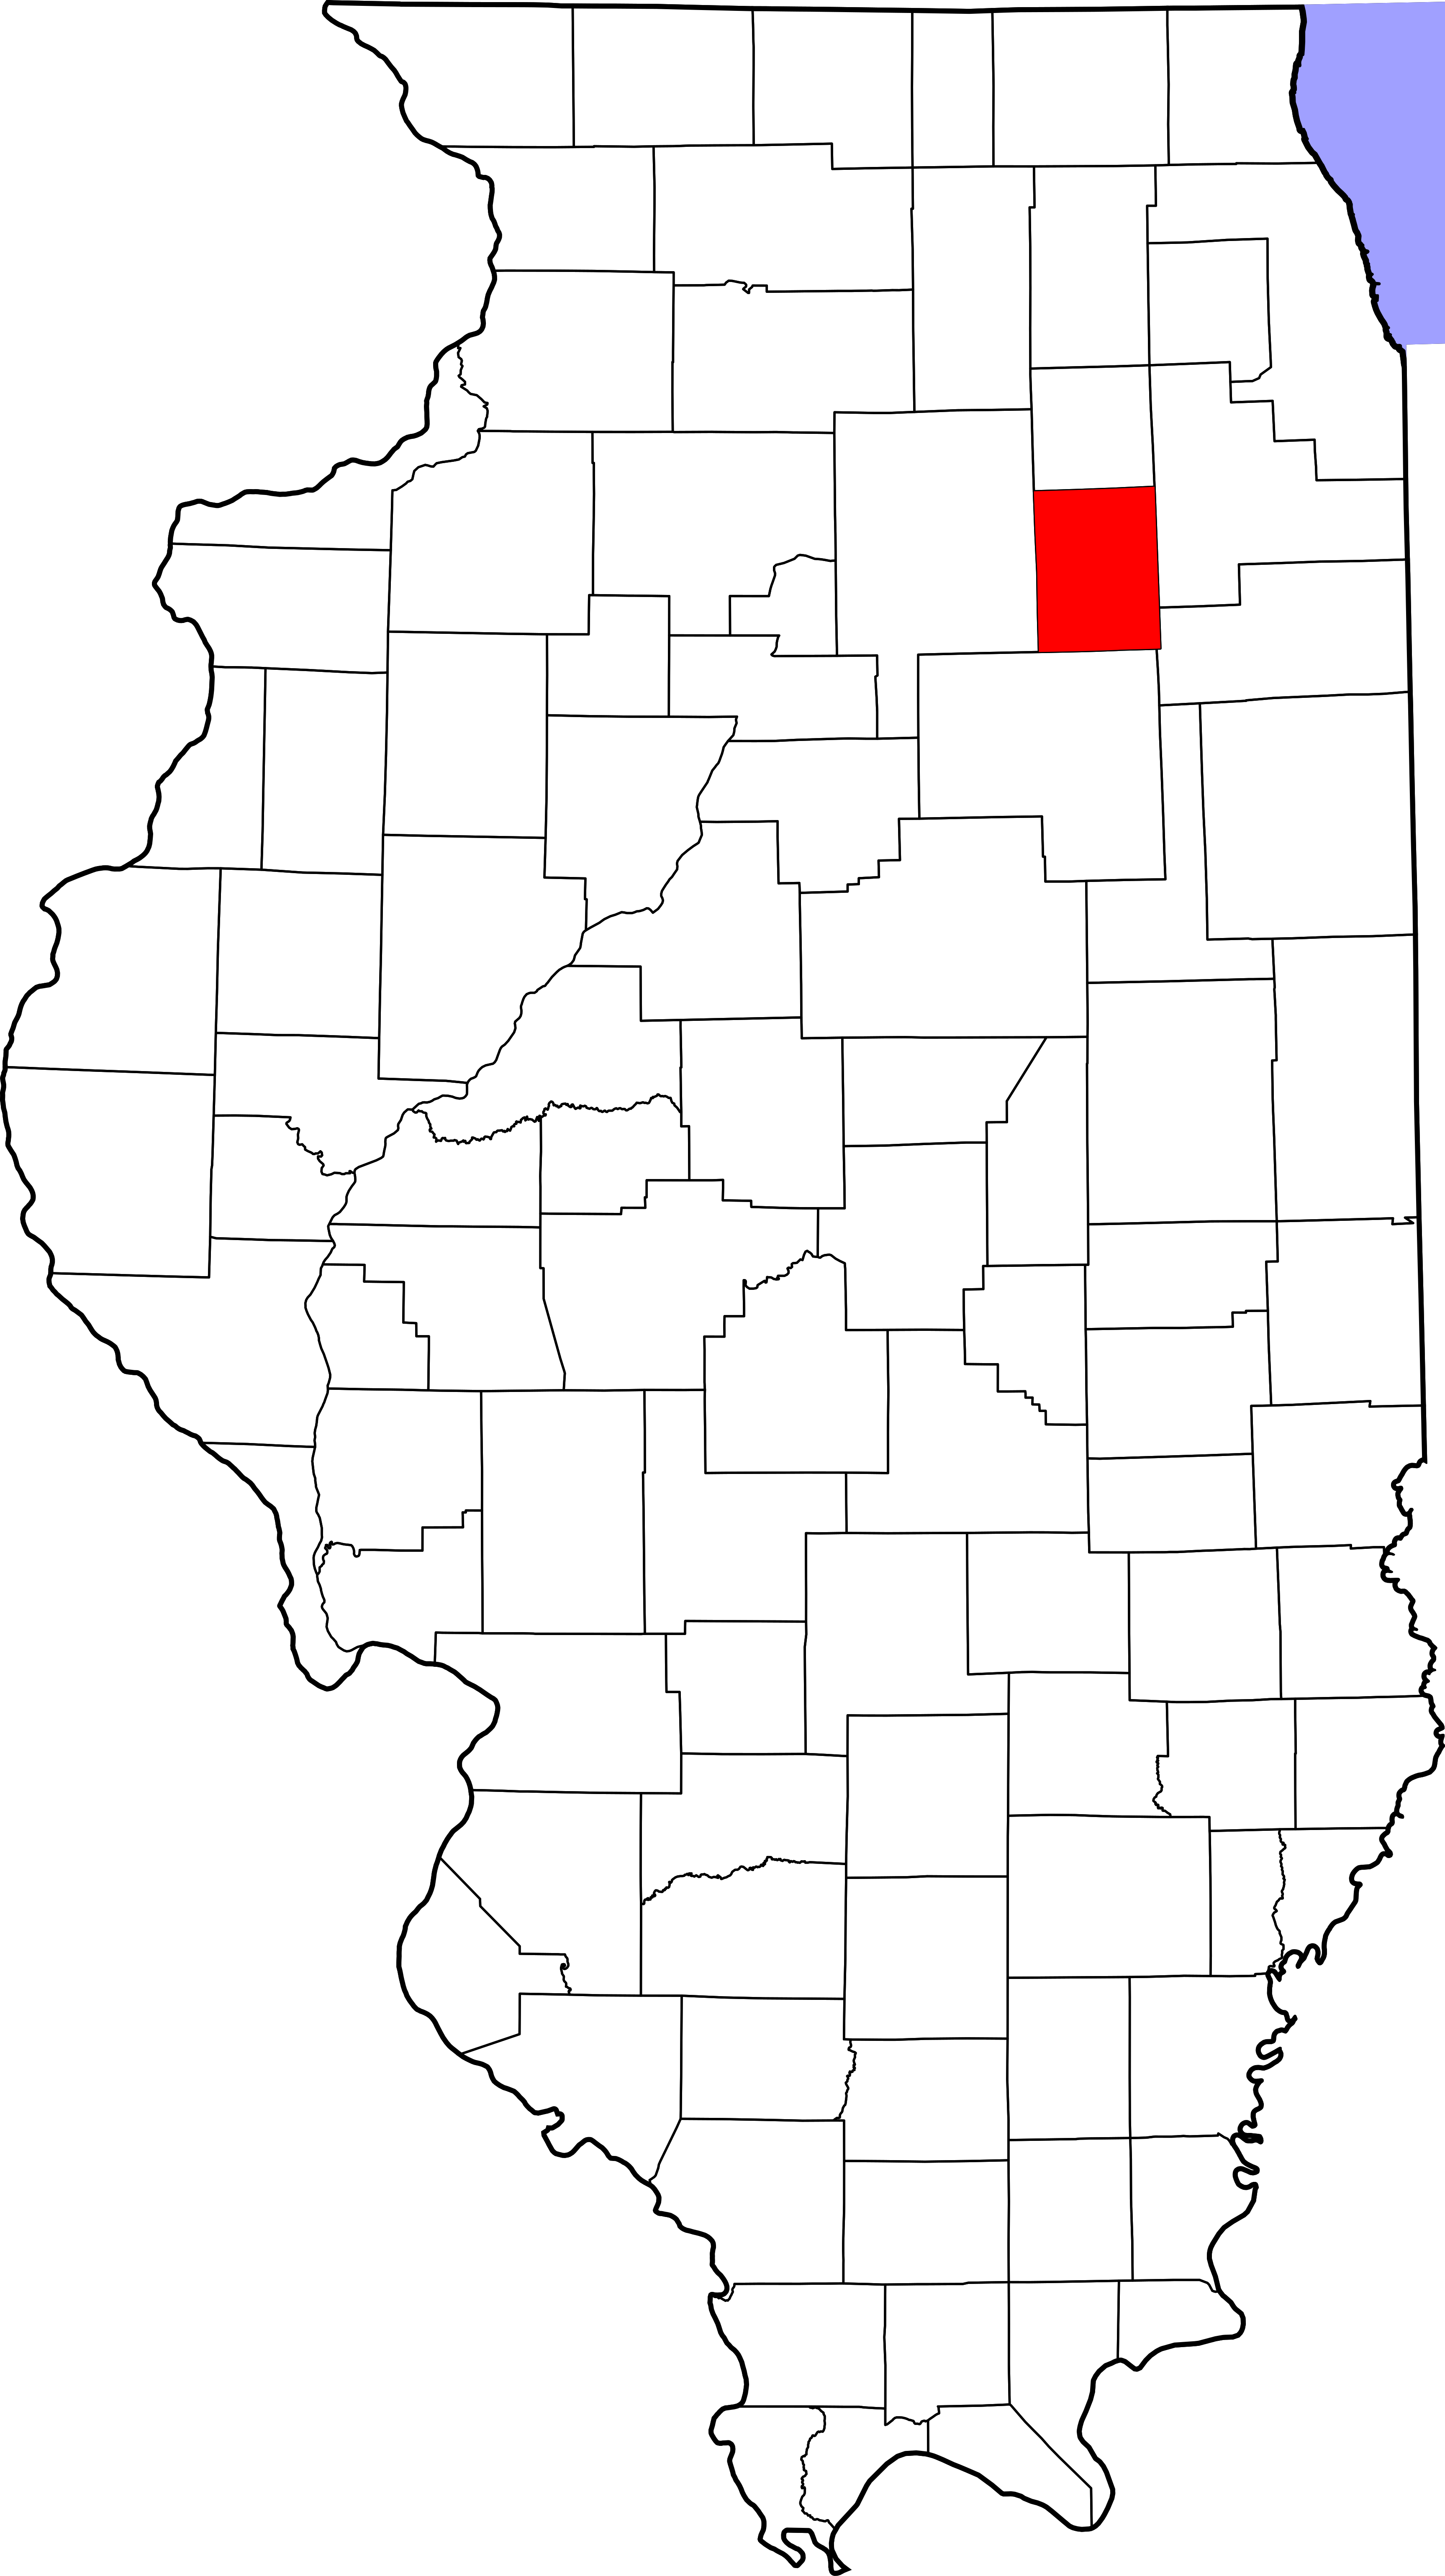 Illinois outline png. File map of highlighting